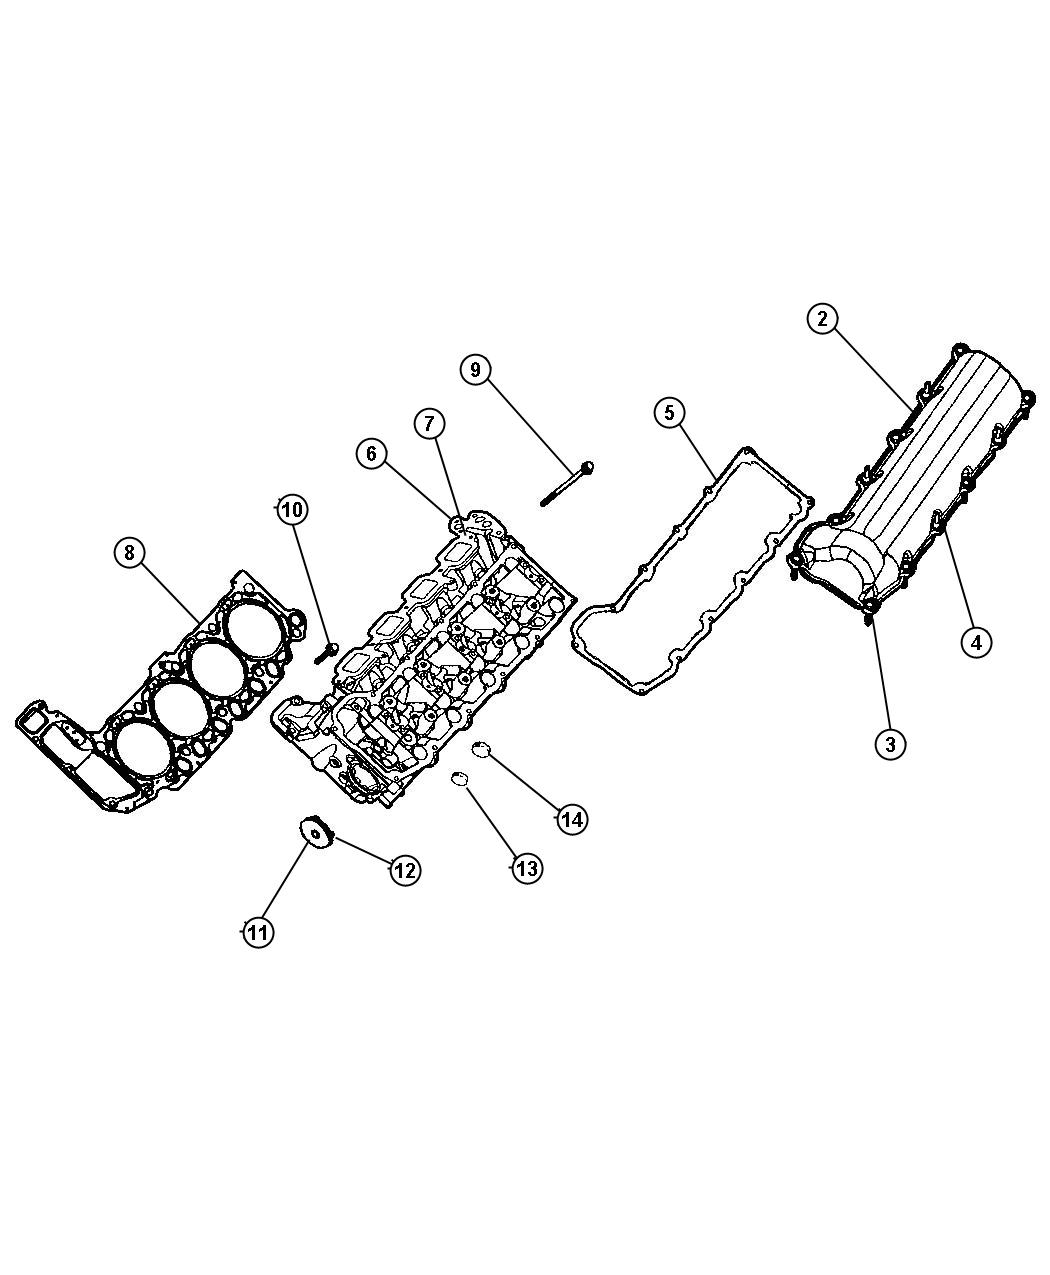 Cylinder Head, 4.7L, [Engines - All 4.7L Gas]. Diagram